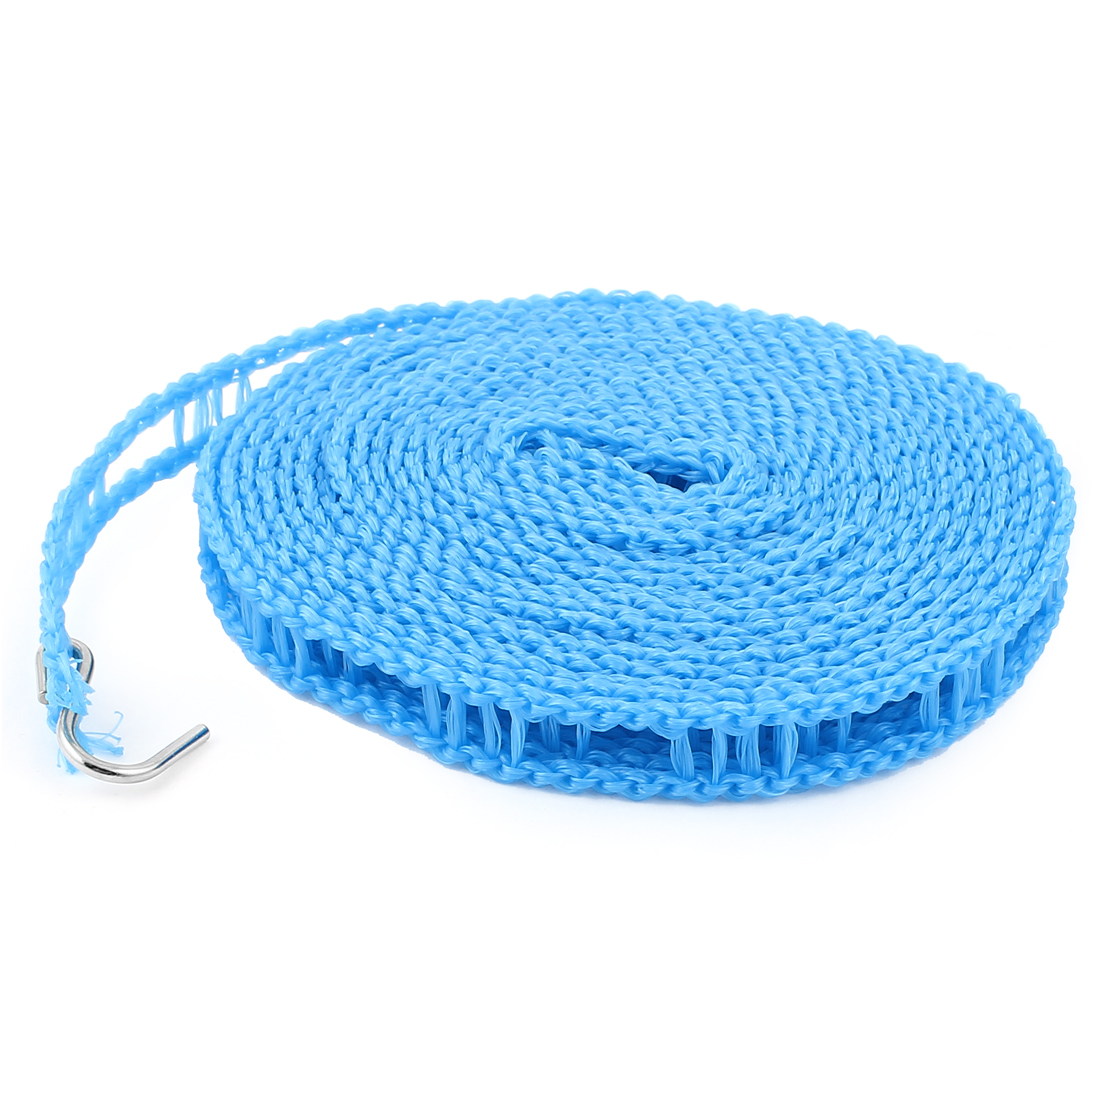 Outdoor Travel Clothesline Laundry Non-slip Washing Clothes Line Rope Blue